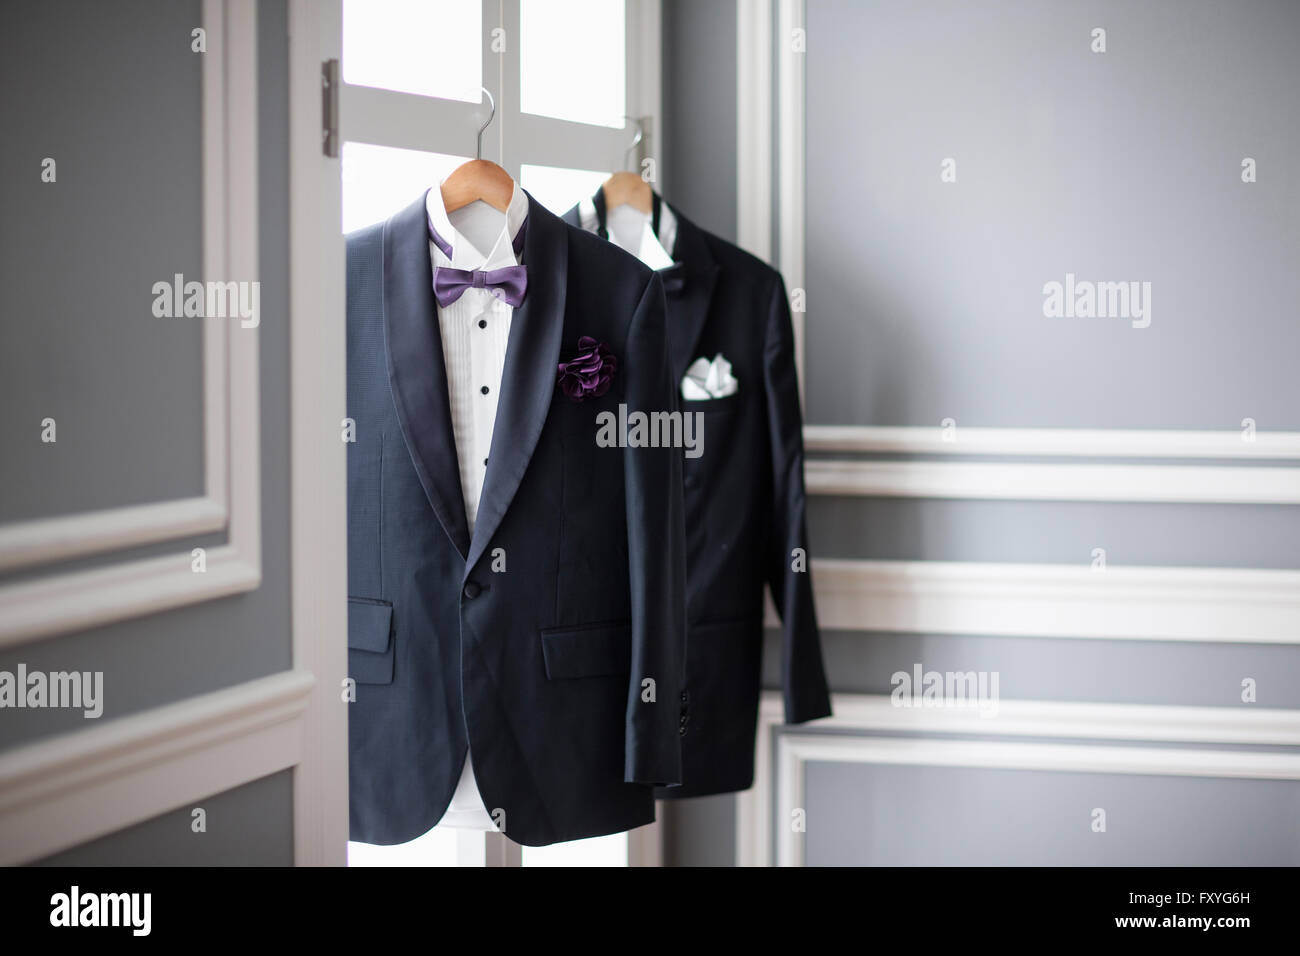 Two sets of tuxedos hung up on windows - Stock Image